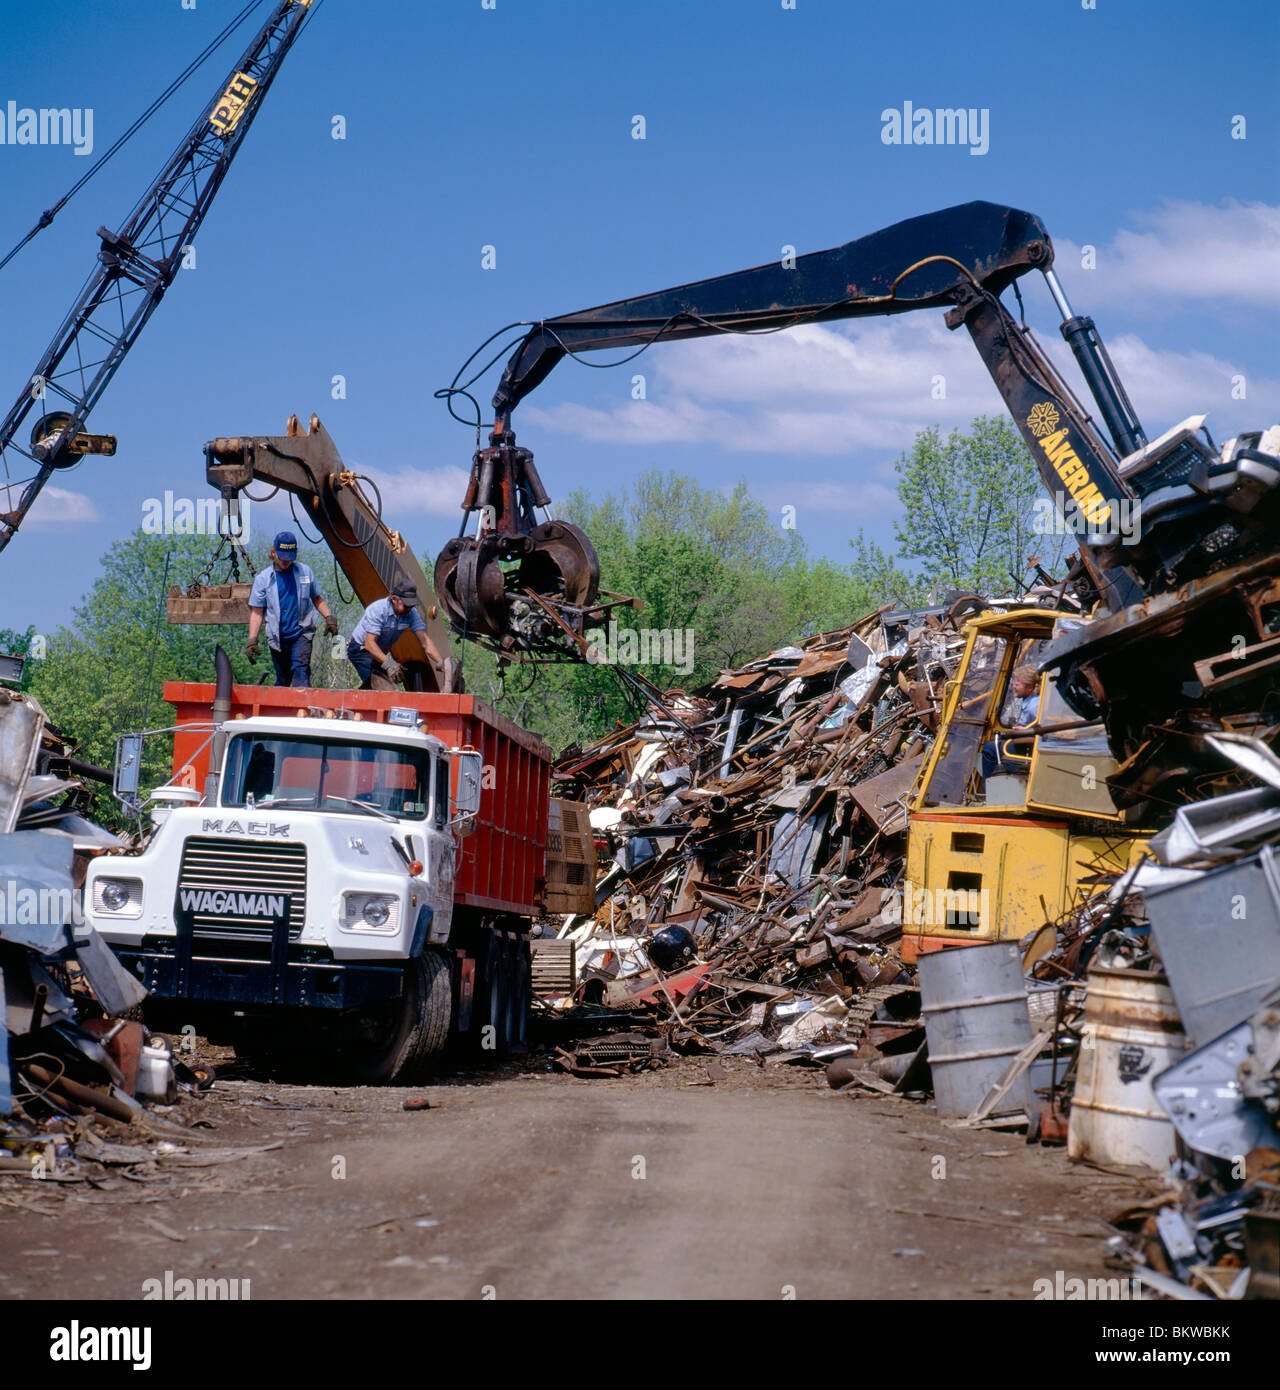 Heavy equipment loading scrap metal into a dump truck at a recycling center - Stock Image